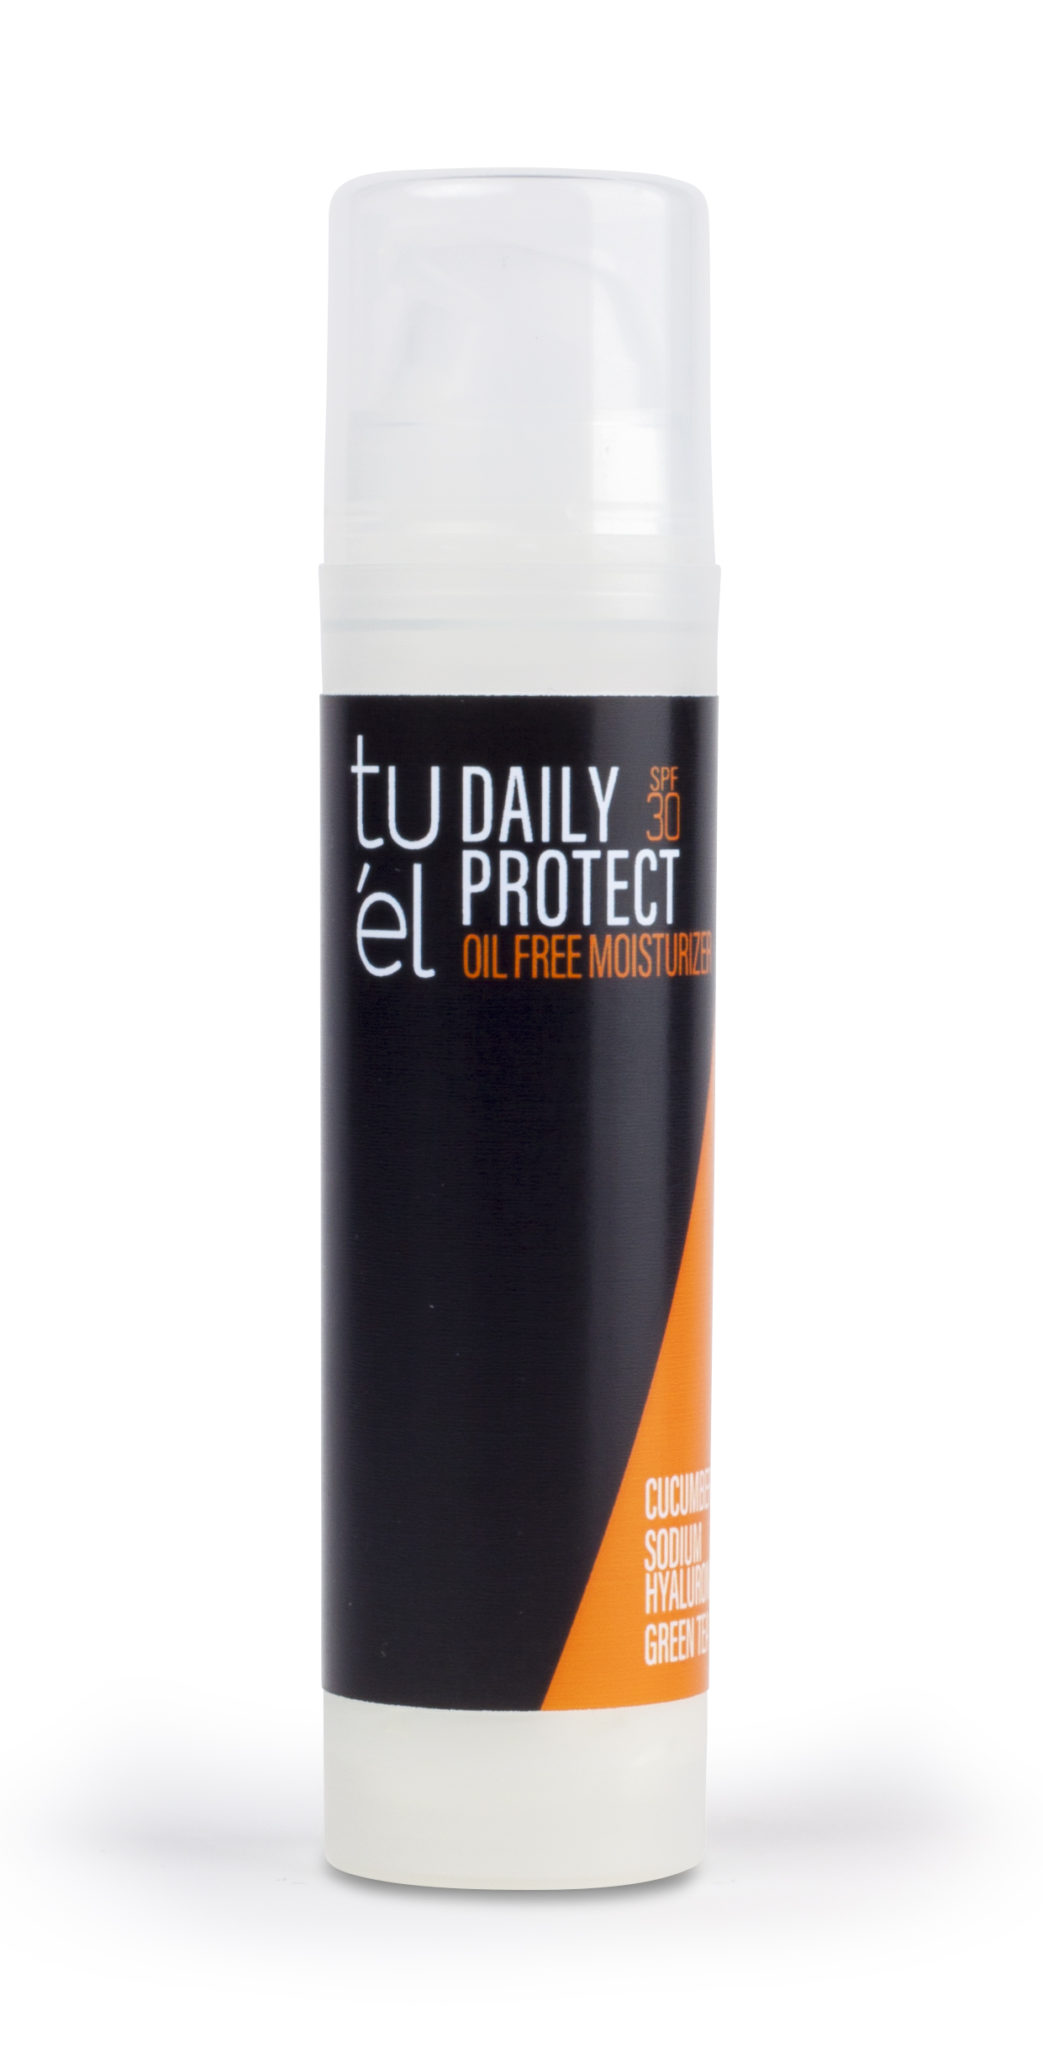 Tuel Daily Protect SPF 30 Daytime Moisturizer